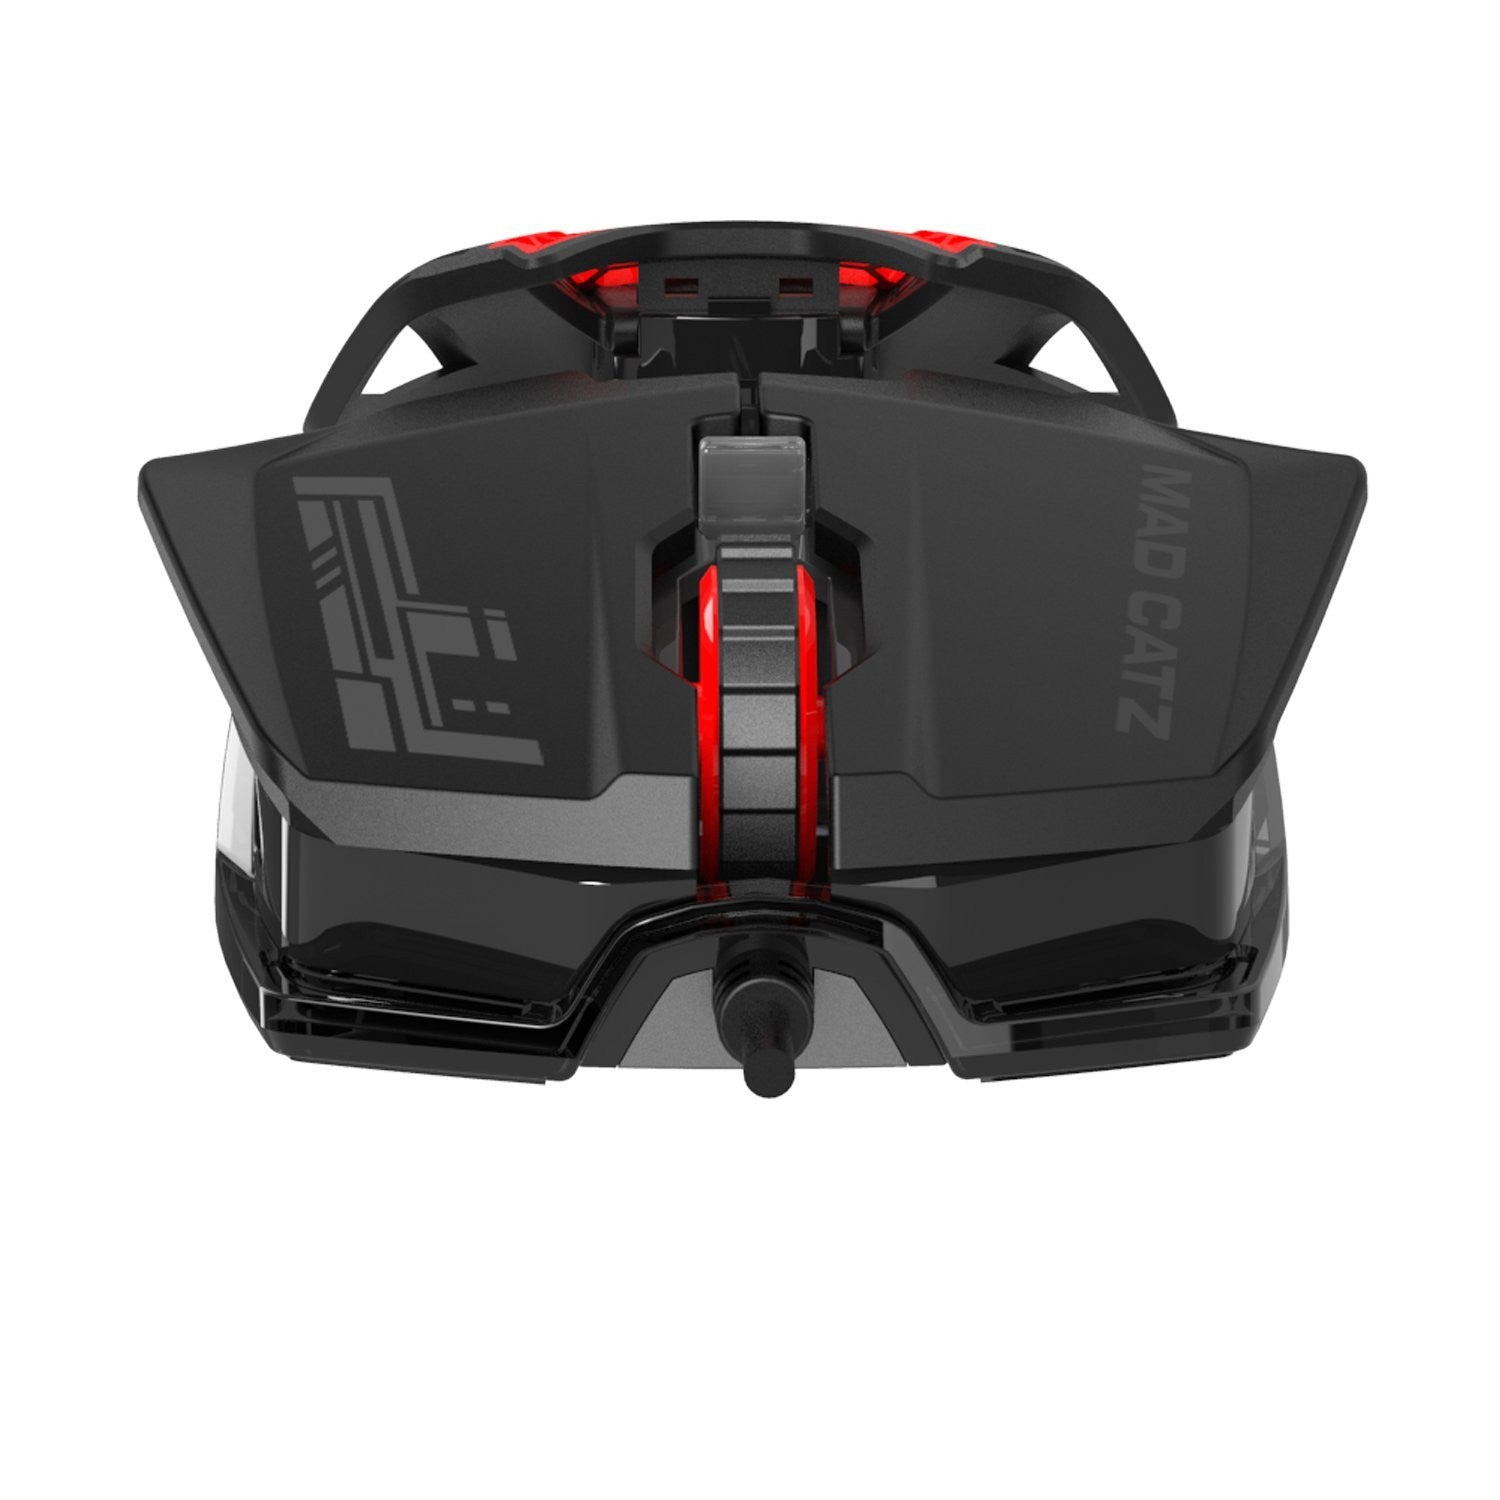 Mad Catz RAT1 Wired Optical Gaming Mouse - Black / Red - Mice by Mad Catz The Chelsea Gamer